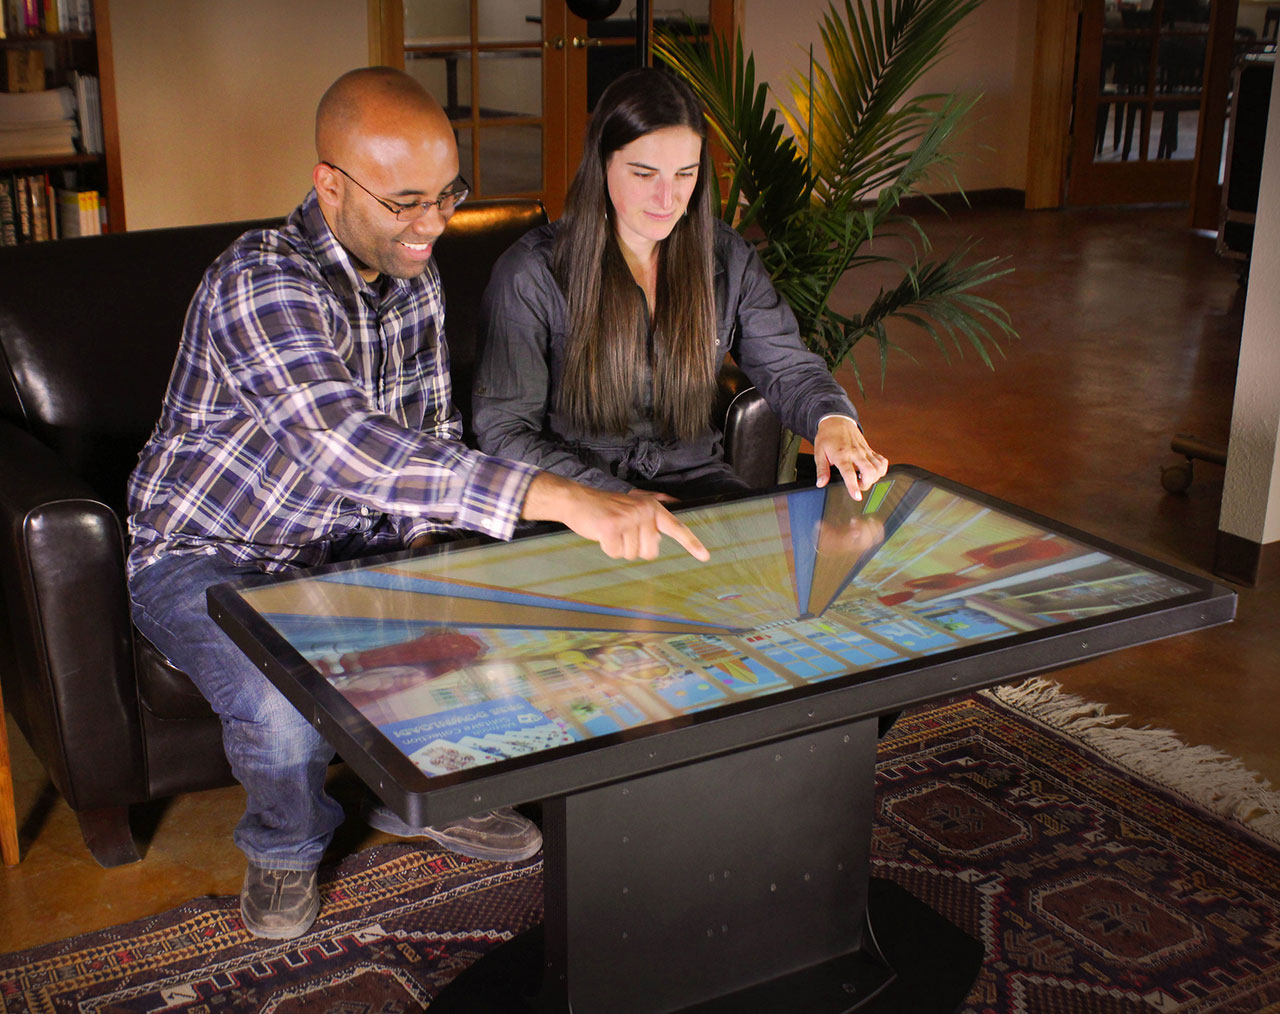 Image for the post: 'Ideum Multitouch Tables Now Available to Rent!'